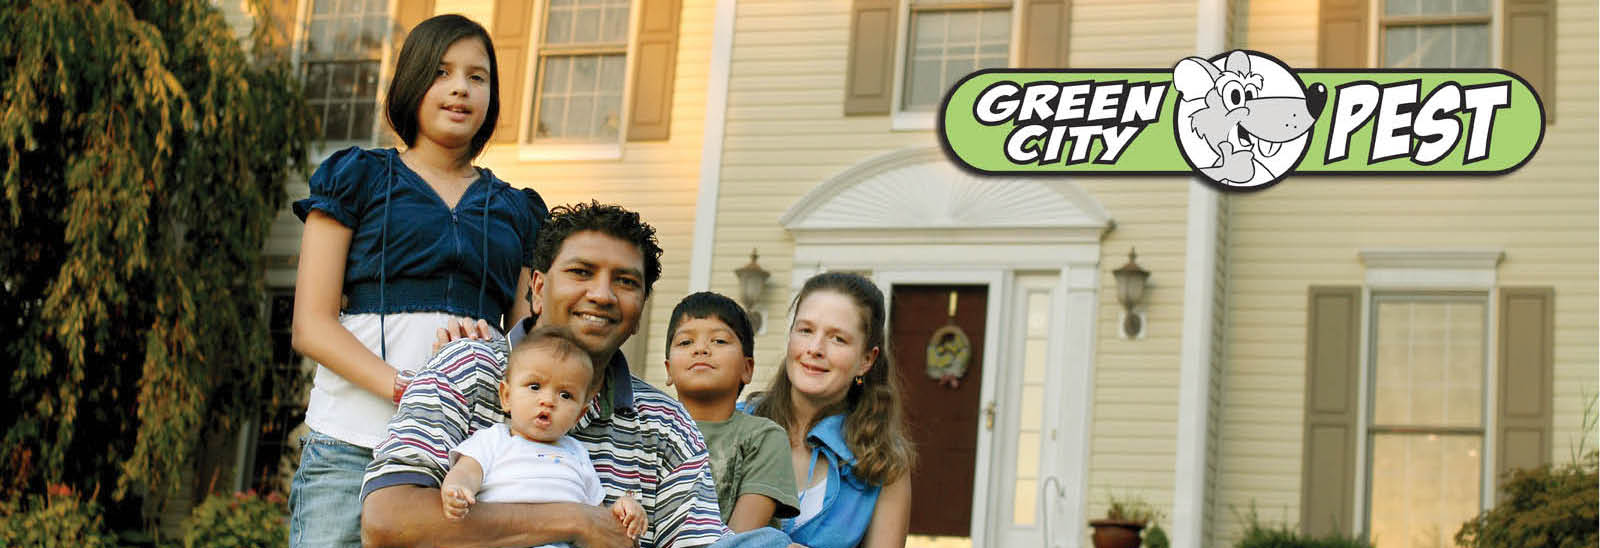 Green City Pest Control main banner image - Maple Valley, WA